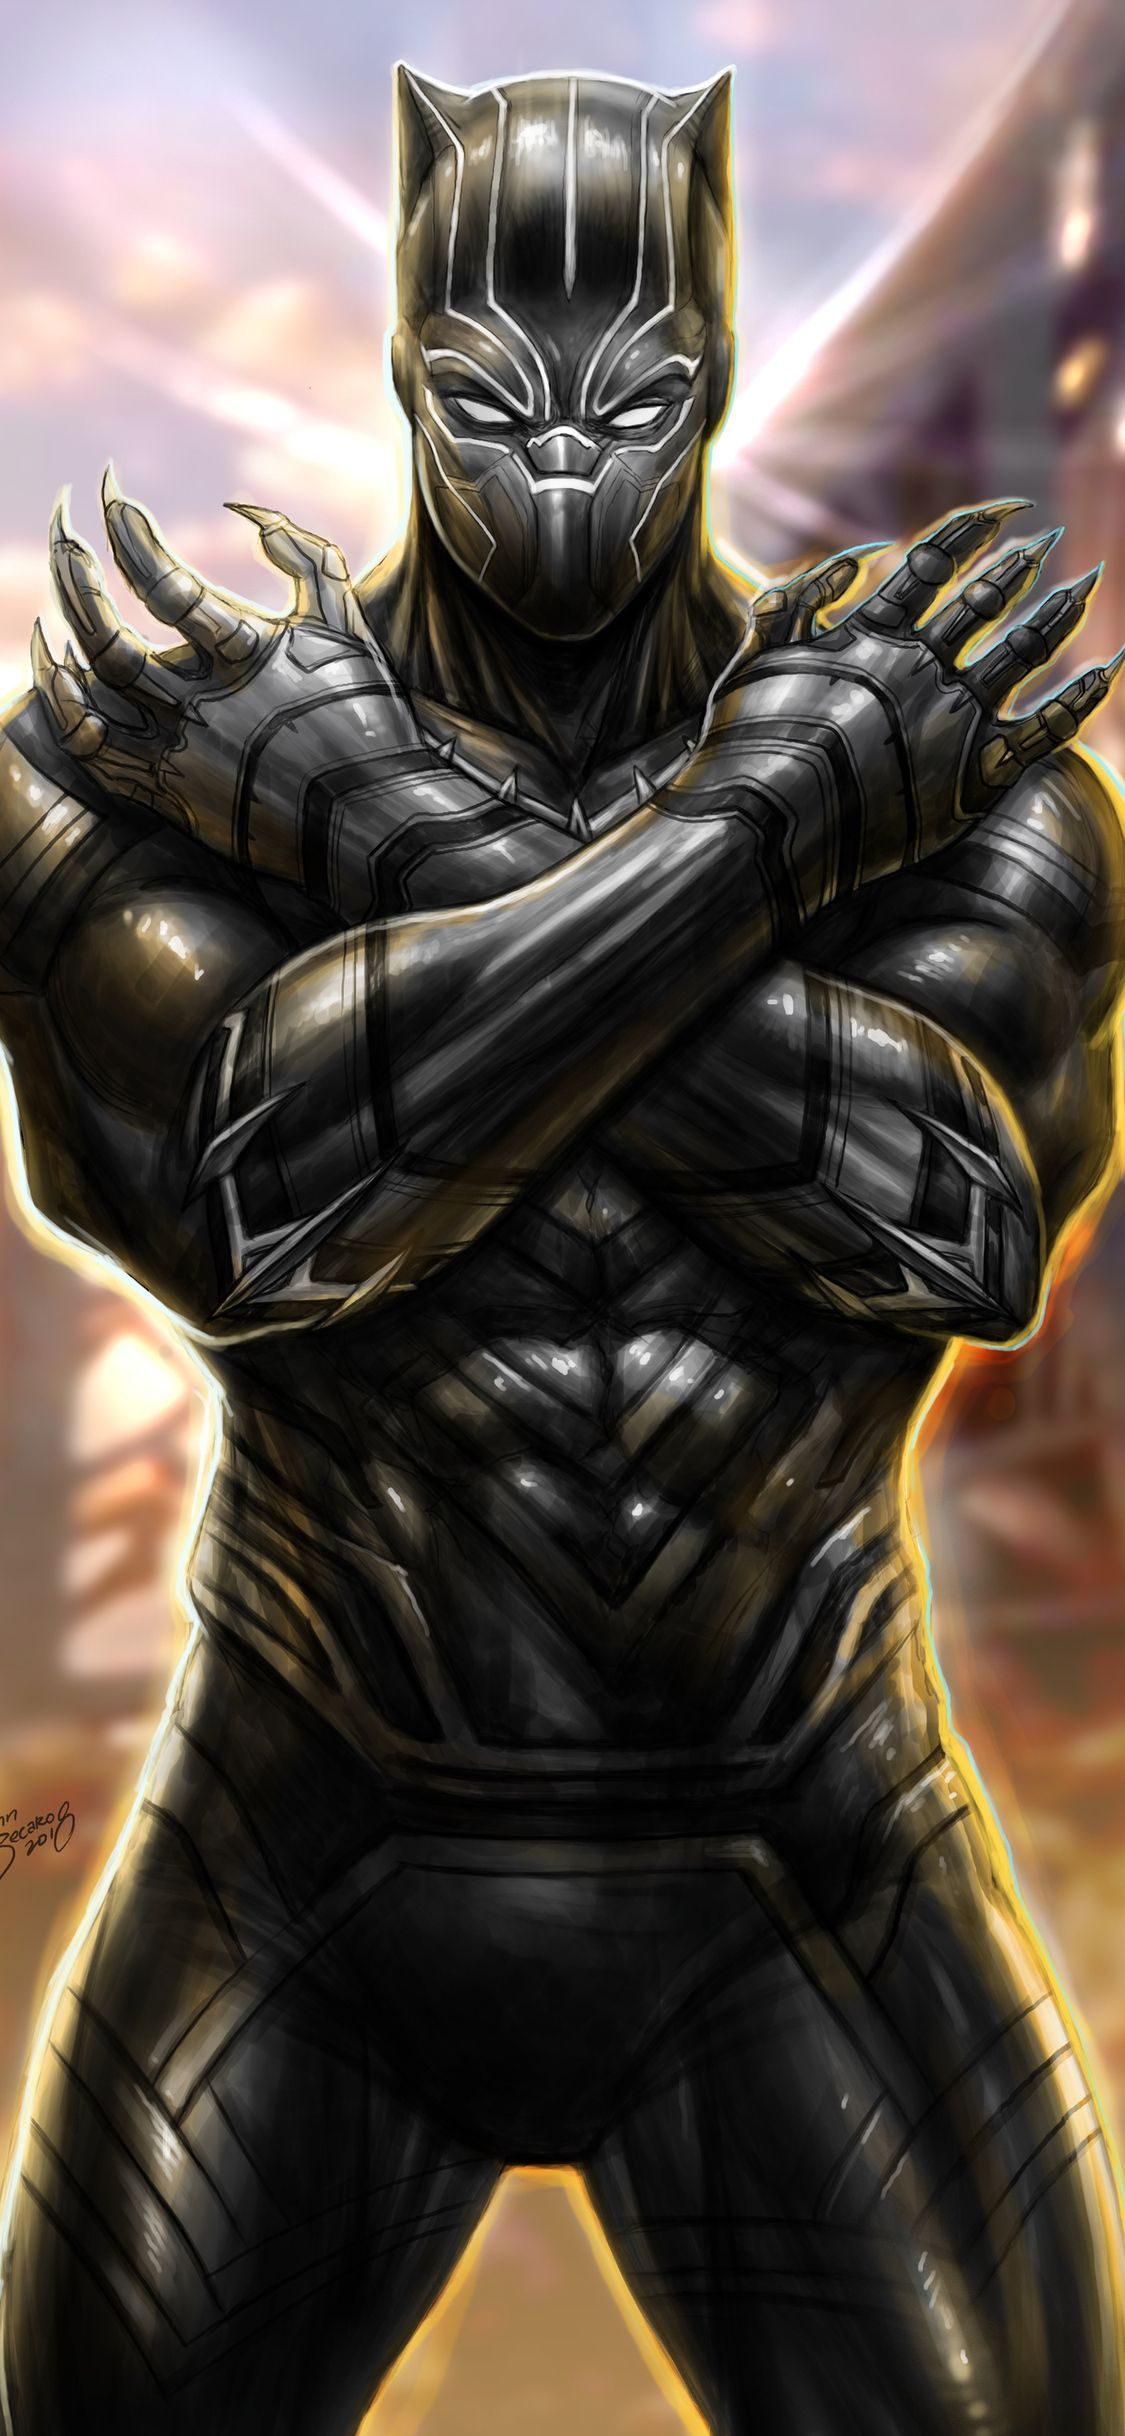 1125x2436 Black Panther New Arts Iphone Xs Iphone 10 Iphone X Hd 4k Wallpapers Images Backgrounds Black Panther Comic Black Panther Marvel Black Panther Art